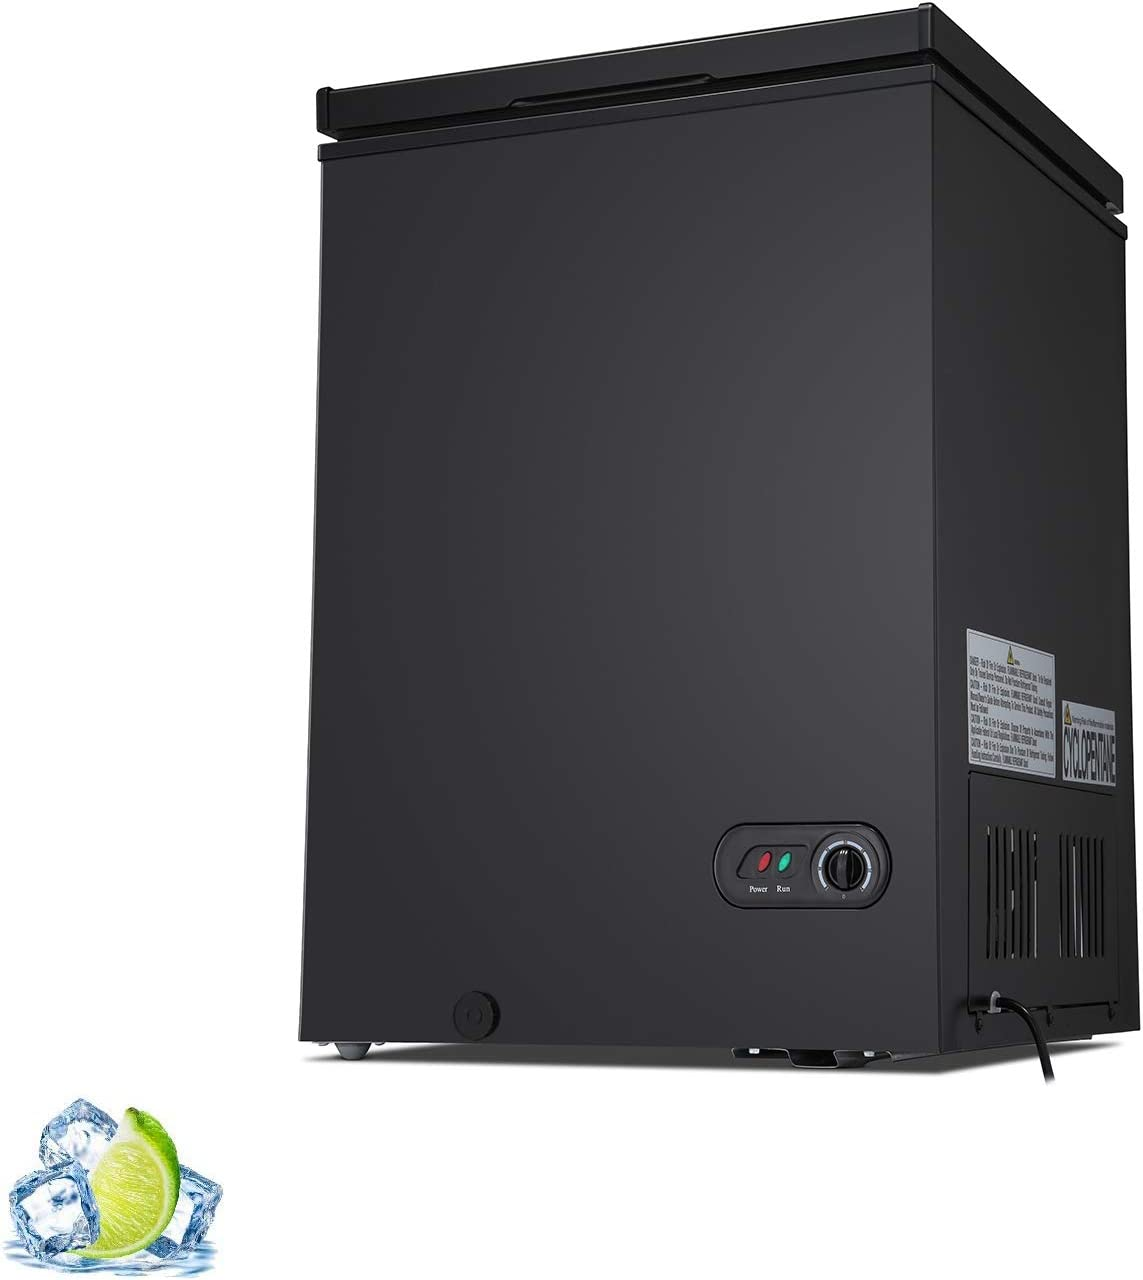 R.W.Flame Commercial Chest Freezer 3.5 Cubic Feet with 2 Removable Basket,Adjustable Temperature,Energy Saving,Black